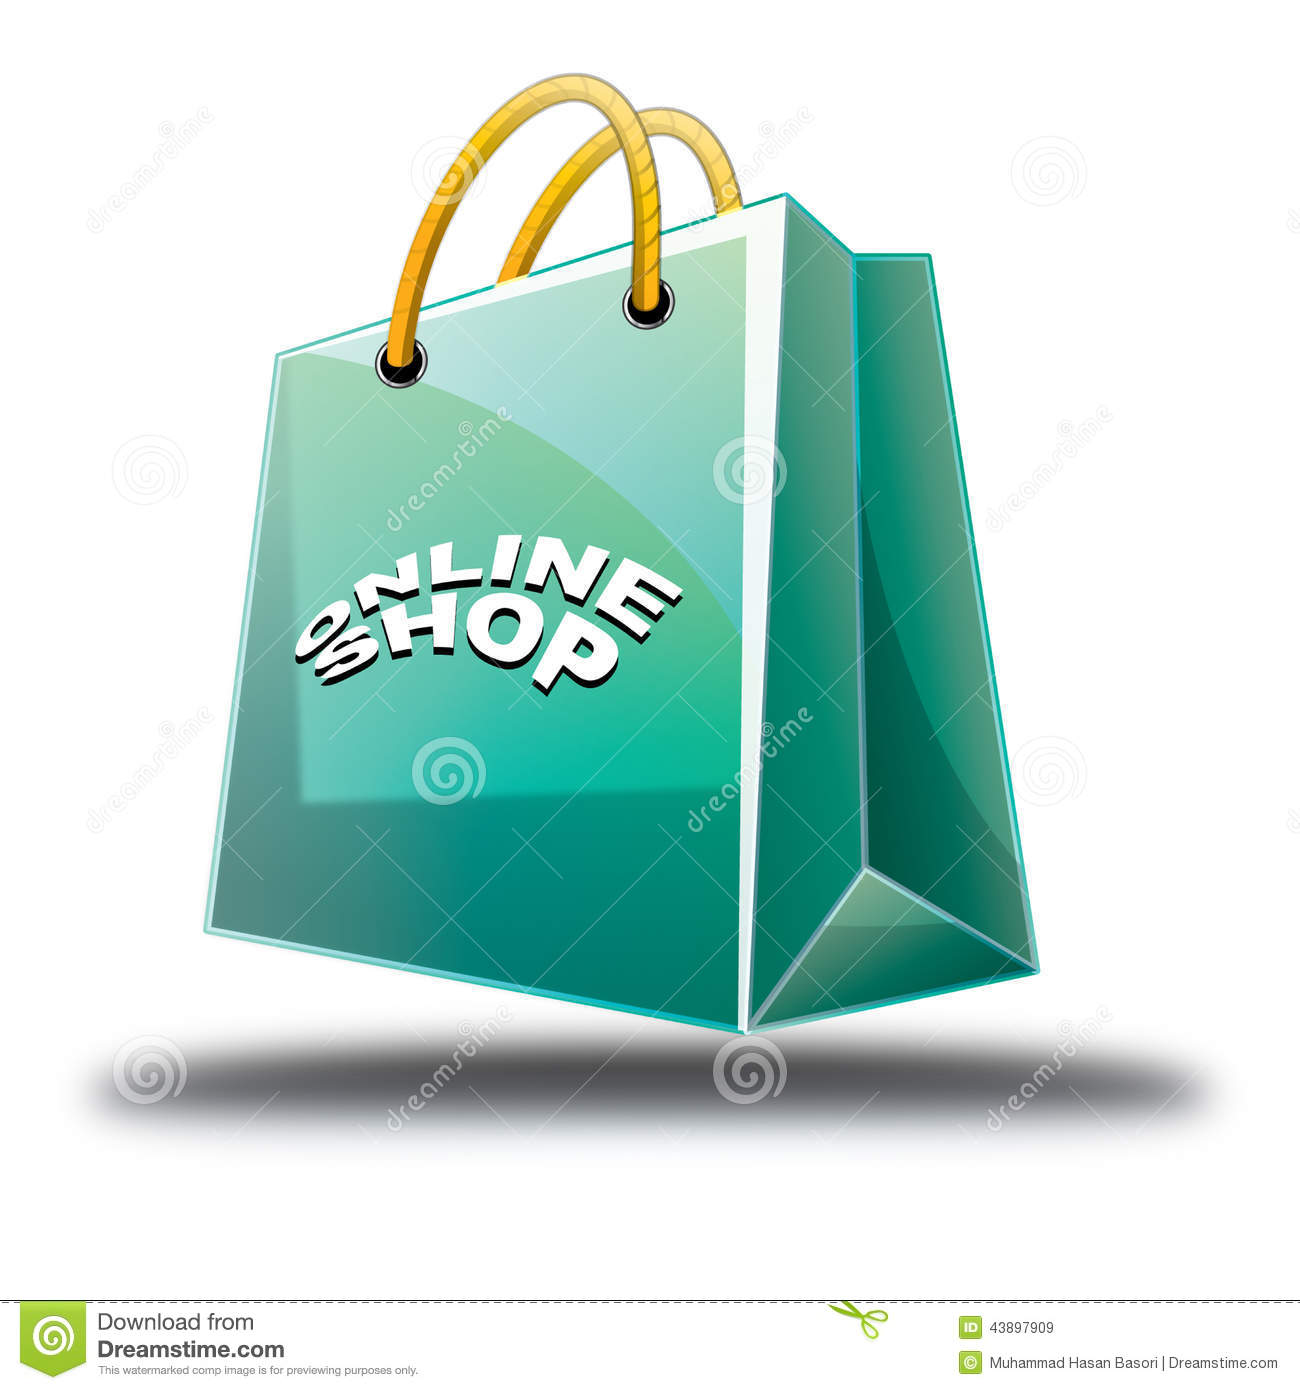 Icon Online Shop Stock Illustration - Image: 61838064